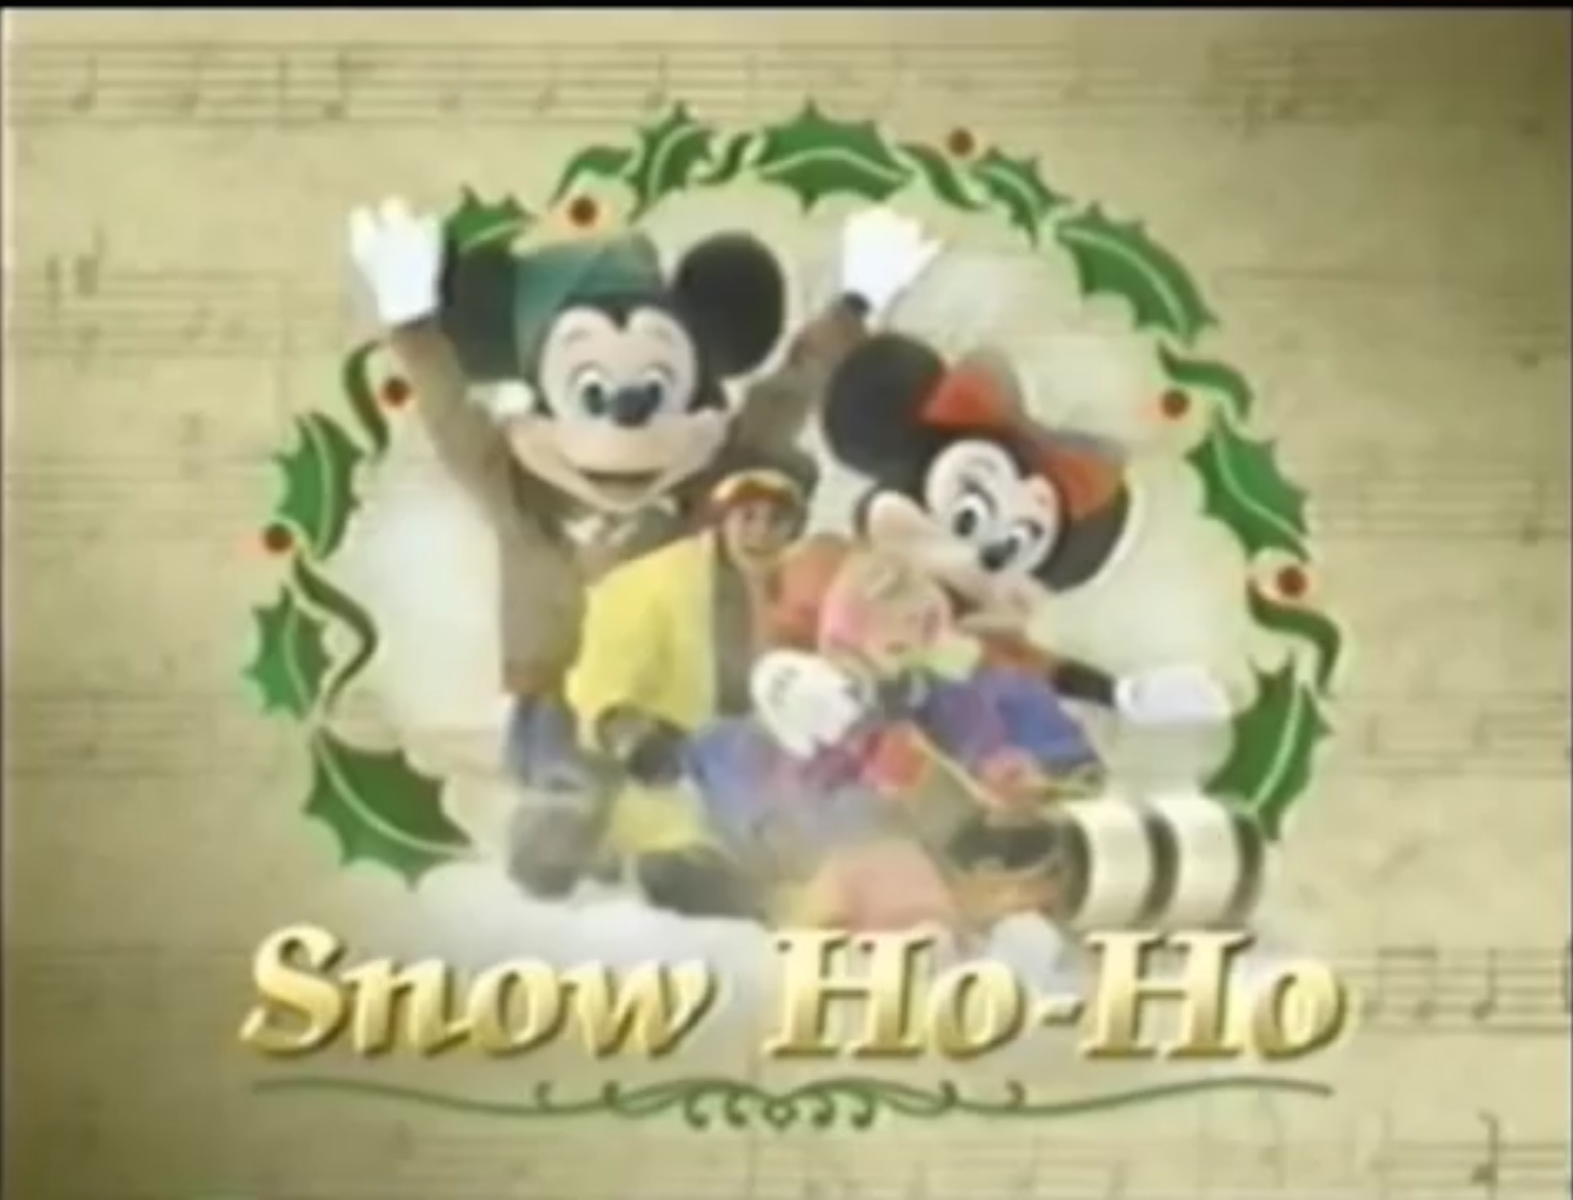 snow ho ho - Disney 12 Days Of Christmas